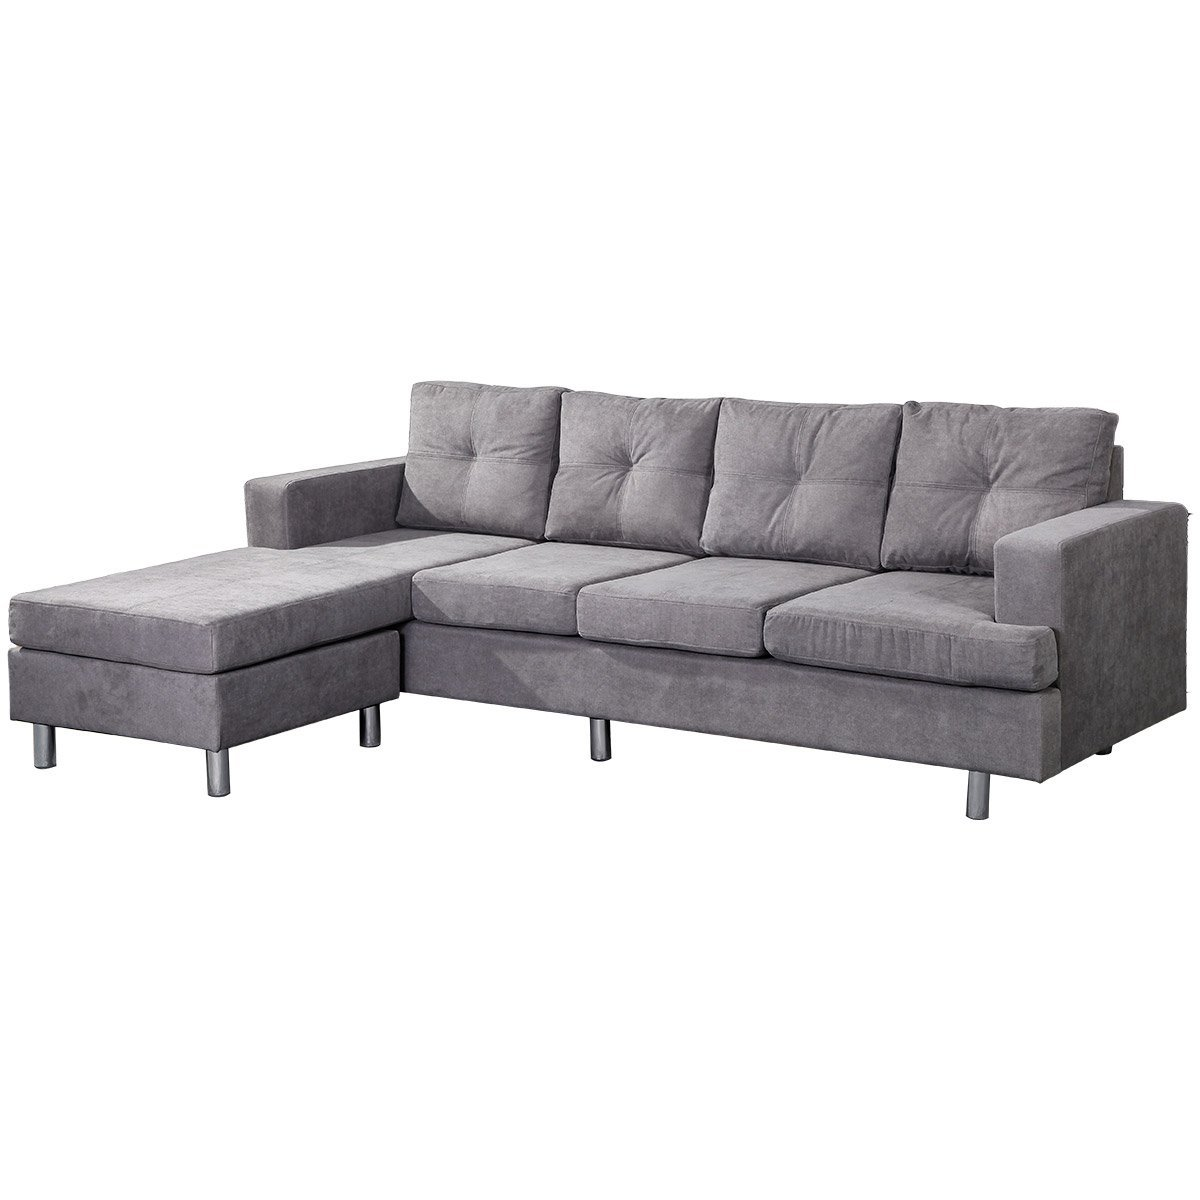 modern style living room l shape sectional sofa with reversible chaise lounge grey